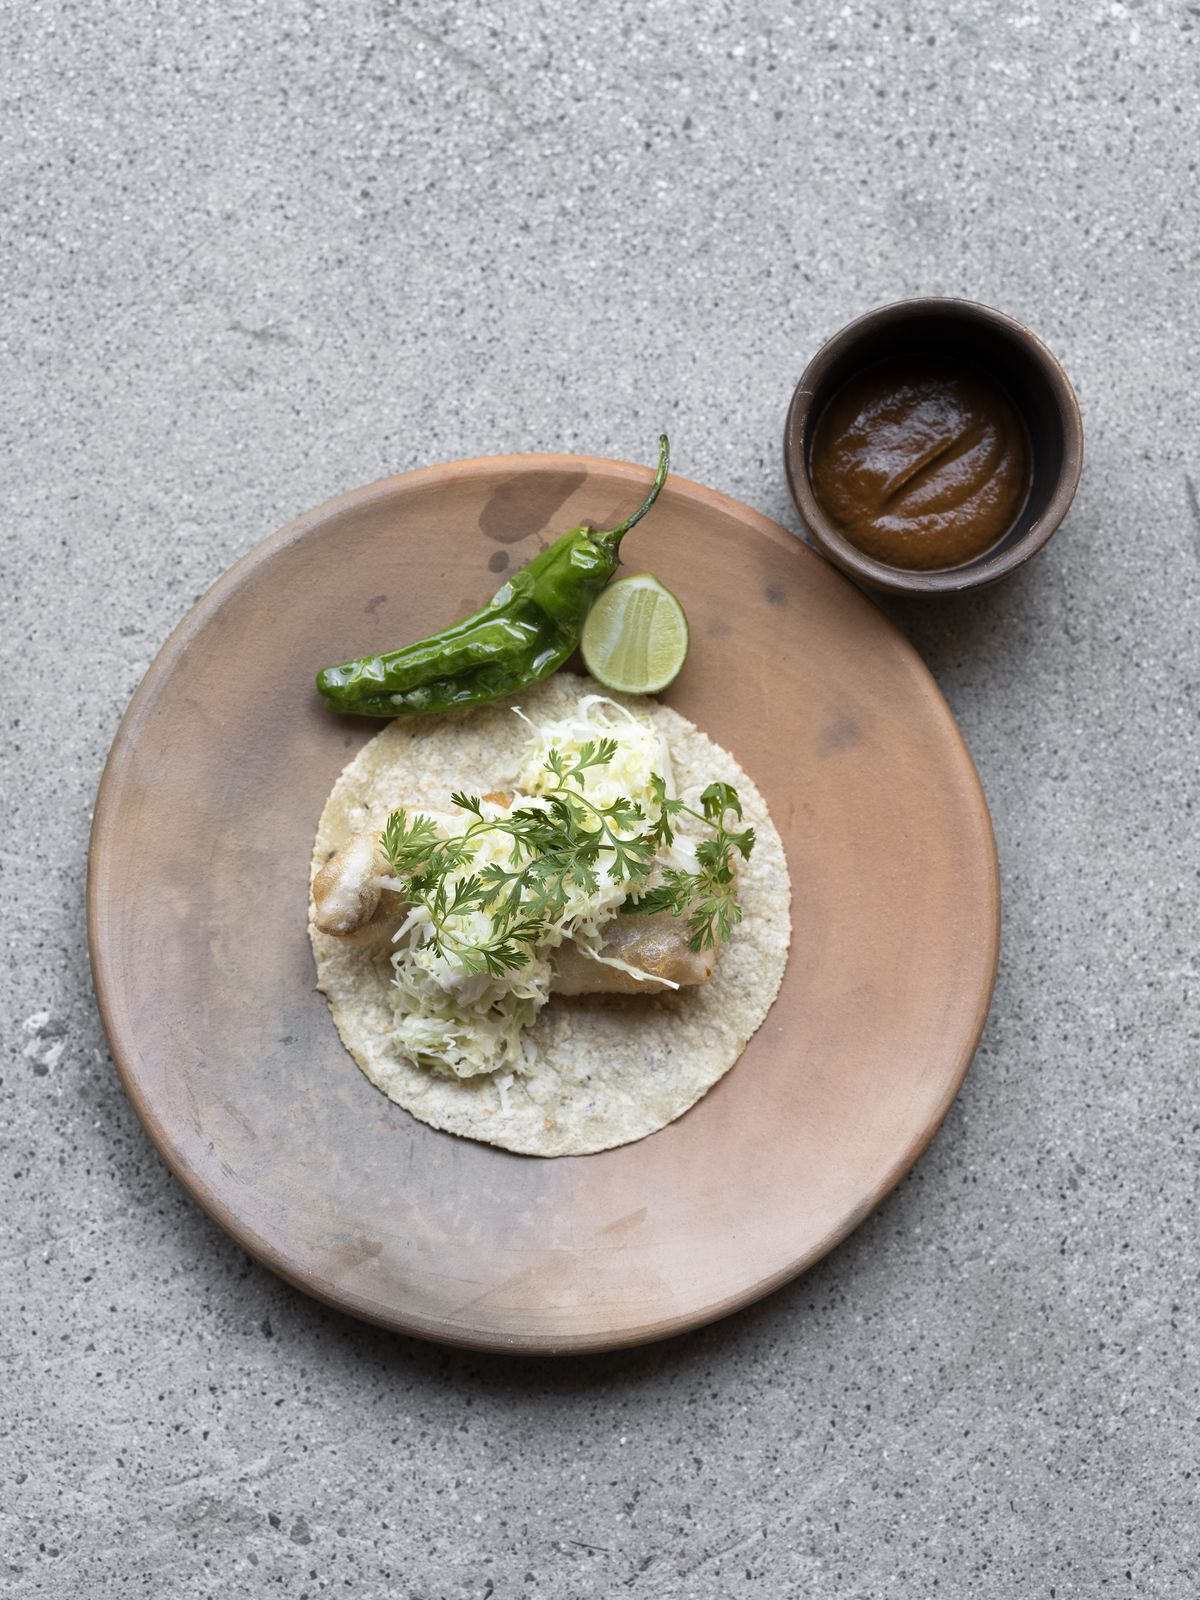 Fried fish taco on a pale brown plate with concrete background.